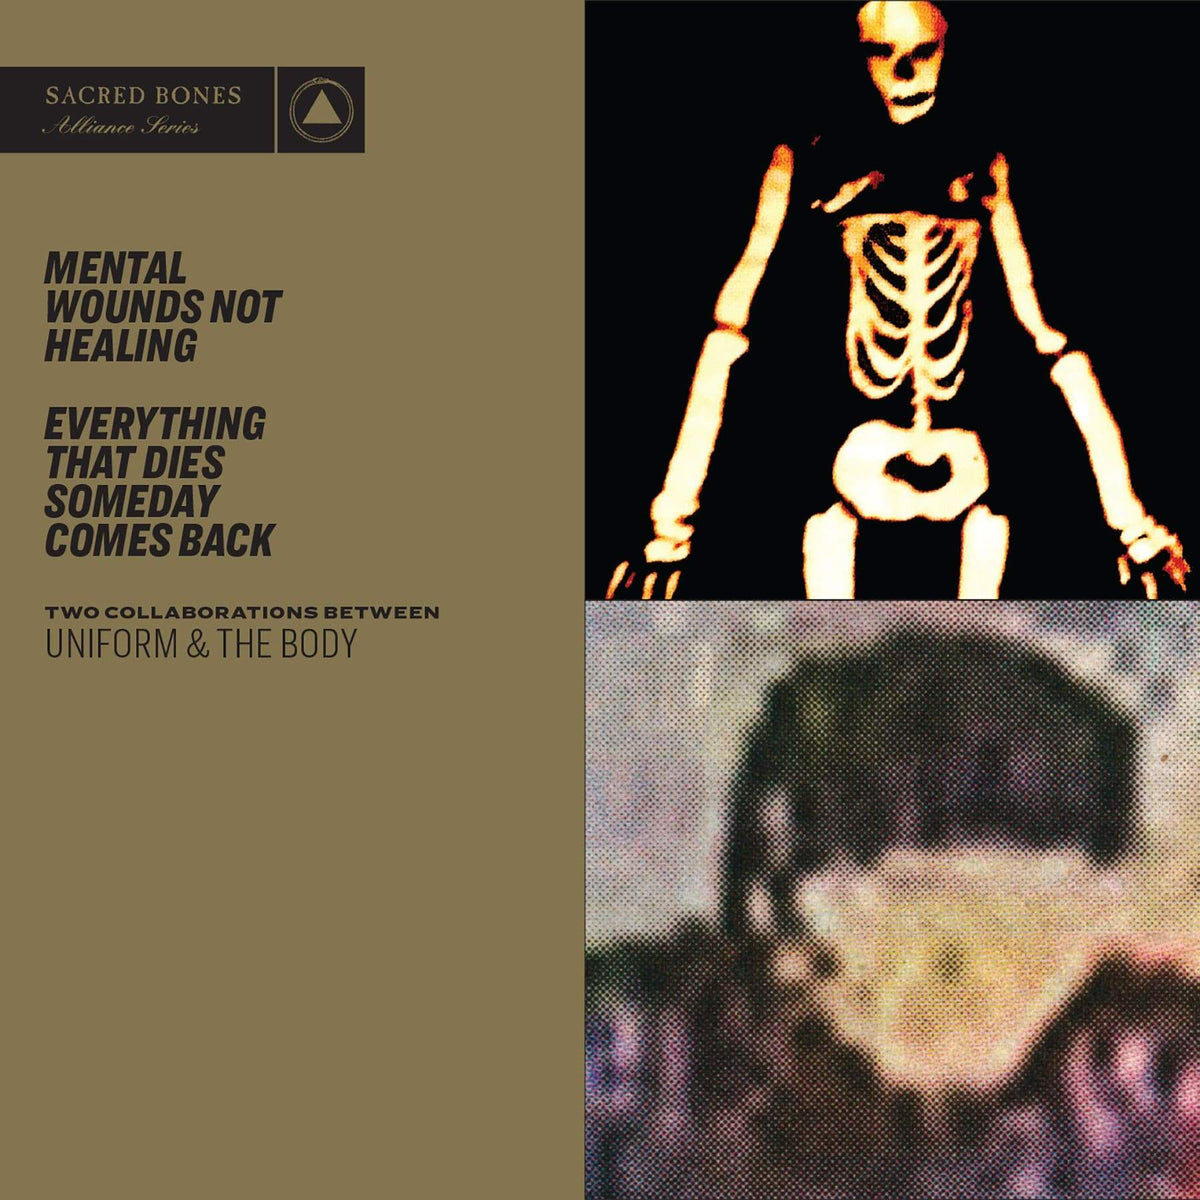 "Sacred Bones Vinyl Uniform & The Body ""Mental Wounds Not Healing / Everything That Dies Someday Comes Back"" CD"